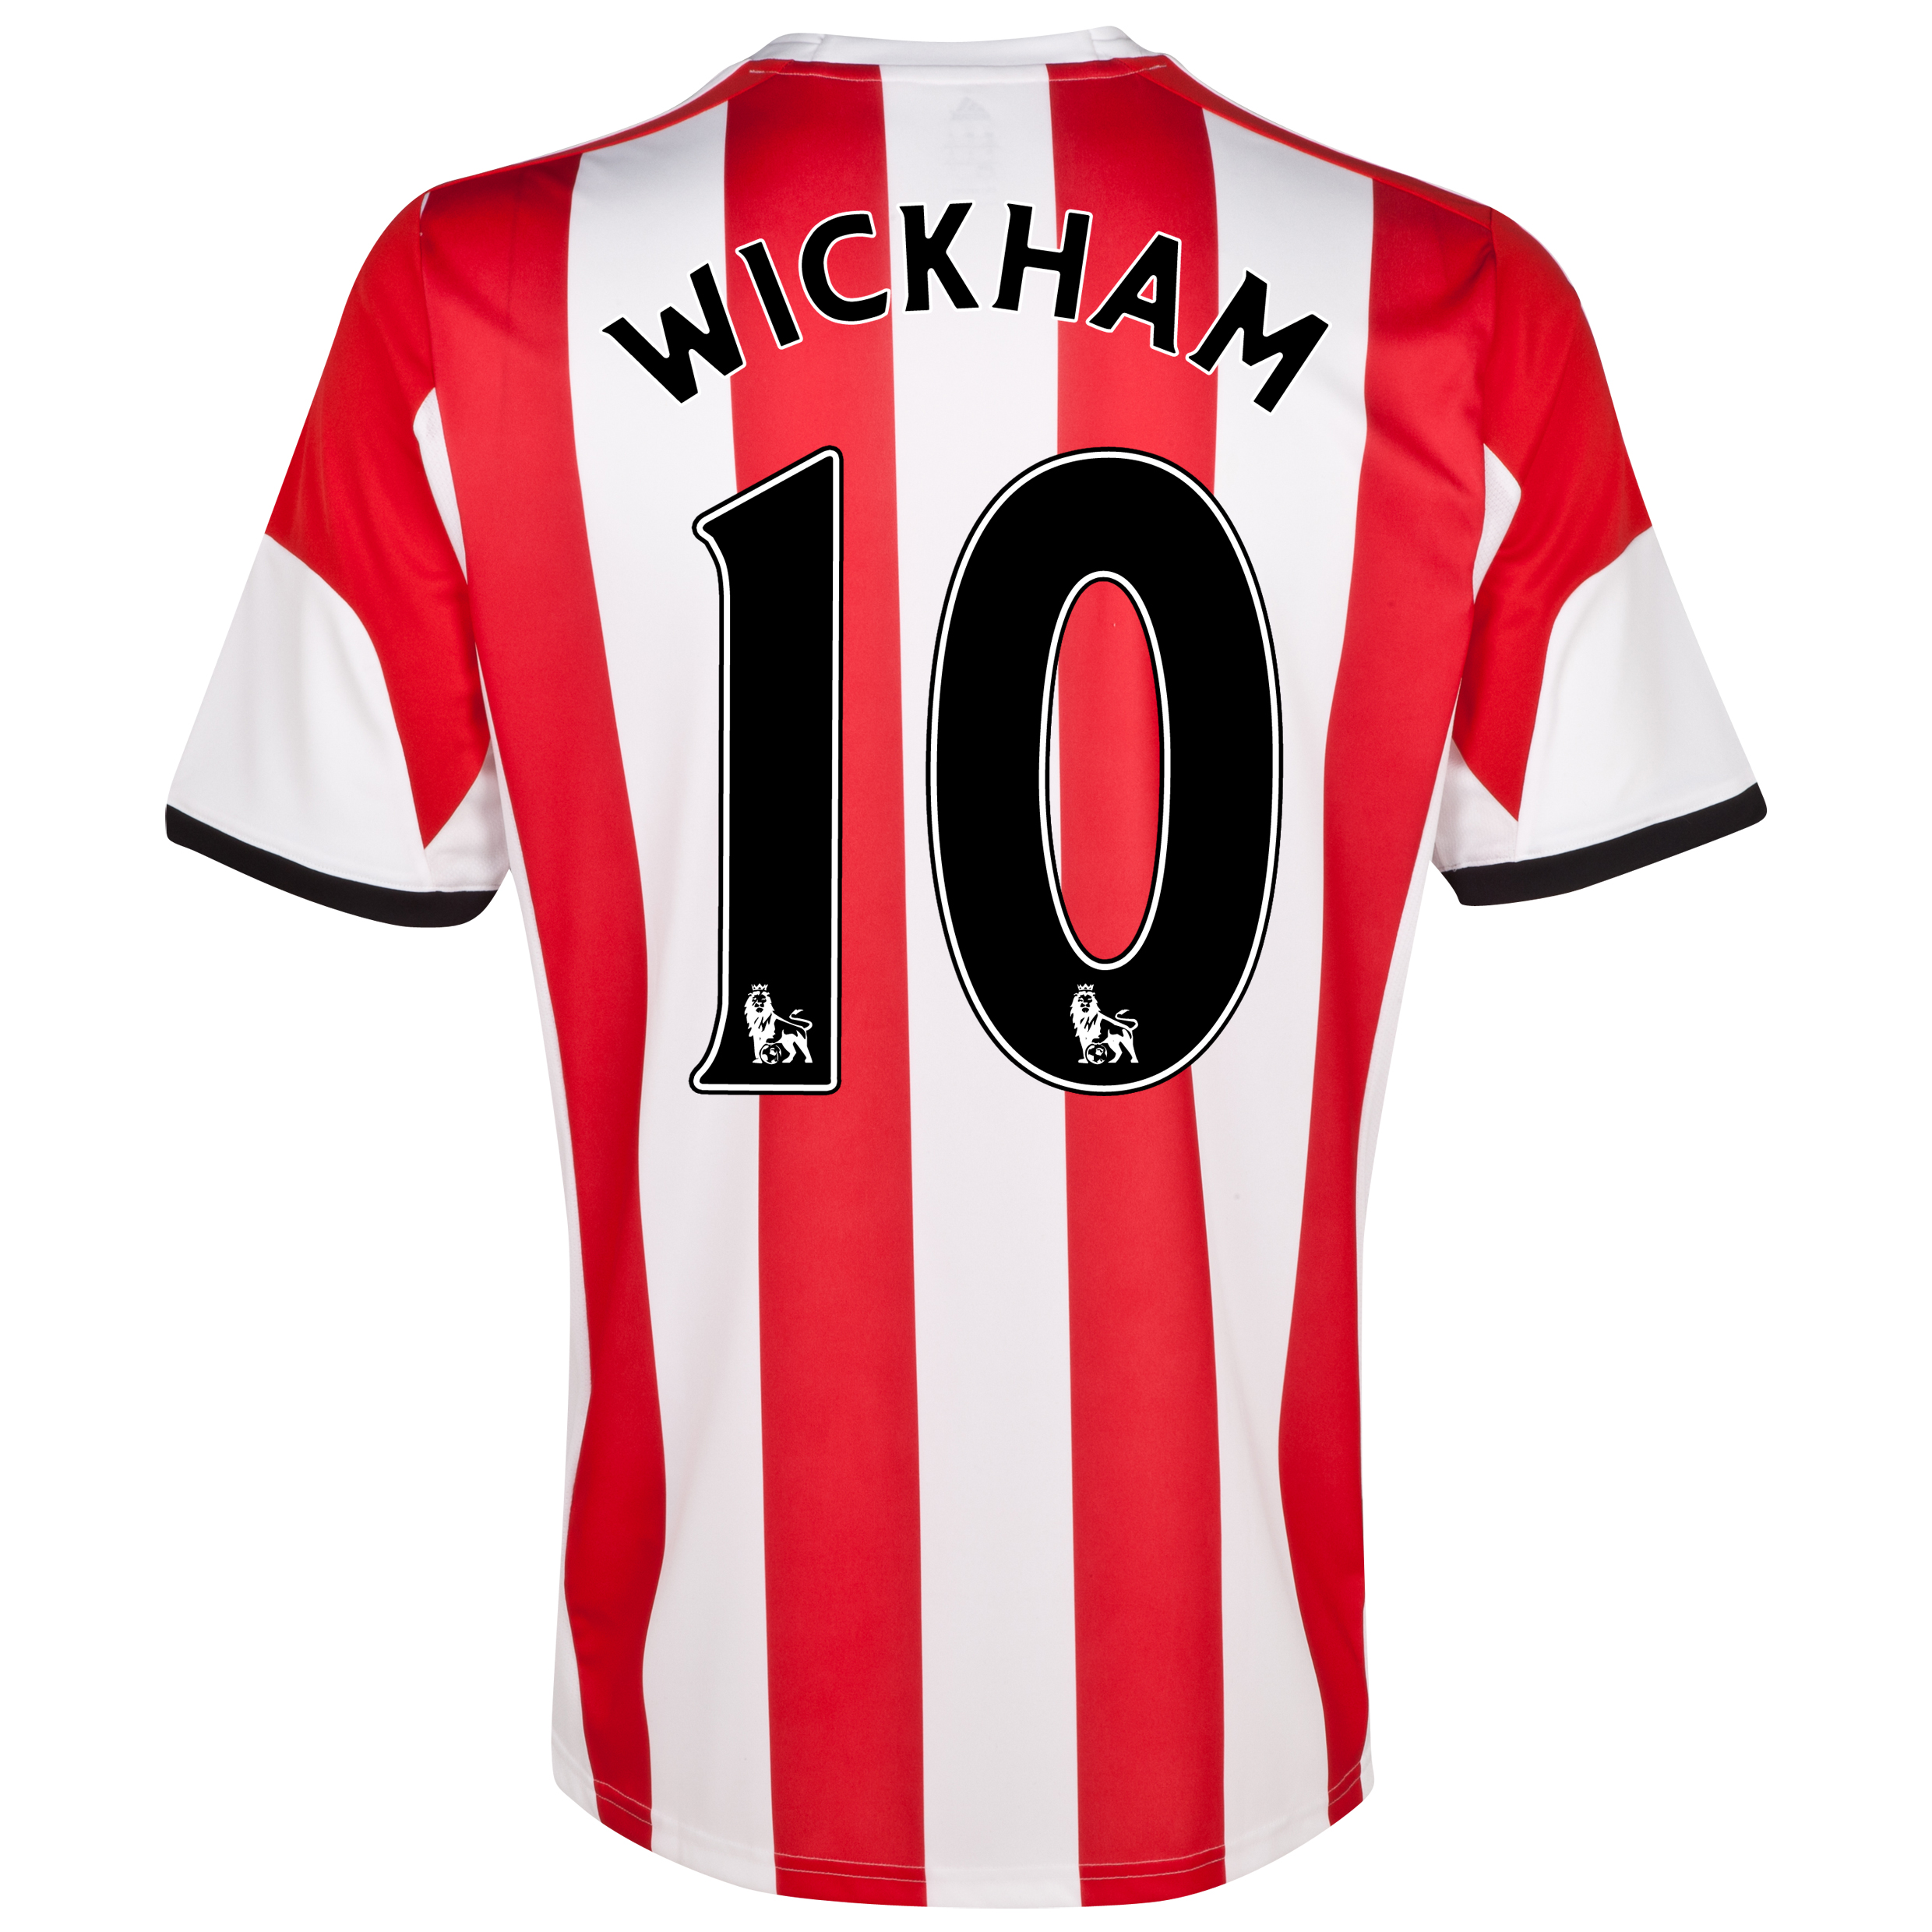 Sunderland Home Shirt 2013/14  with Wickham 10 printing